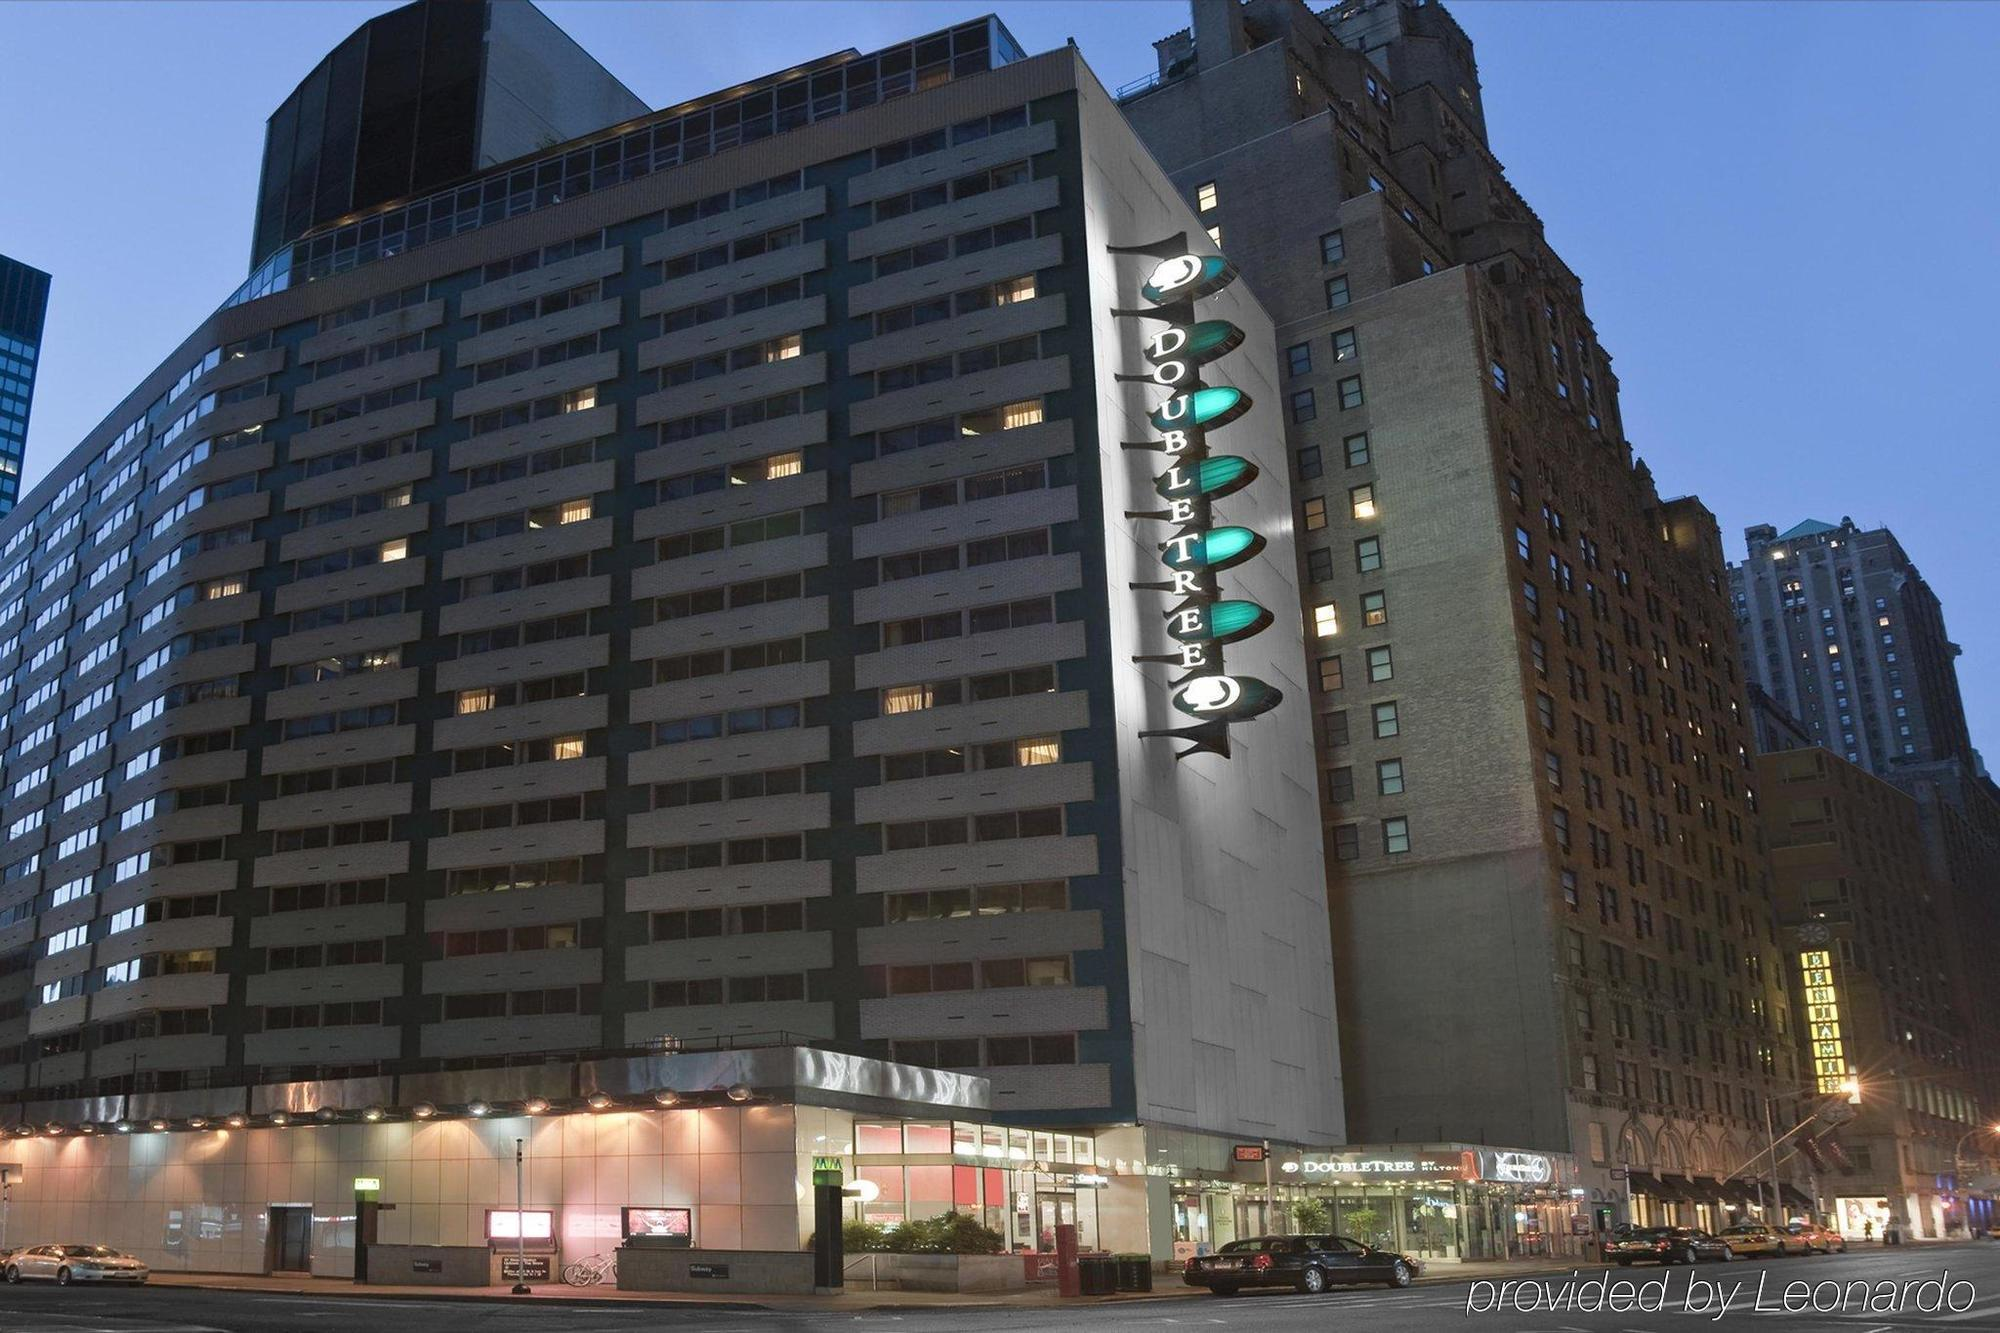 Hotel doubletree metropolitan by hilton new york city for New york hotels